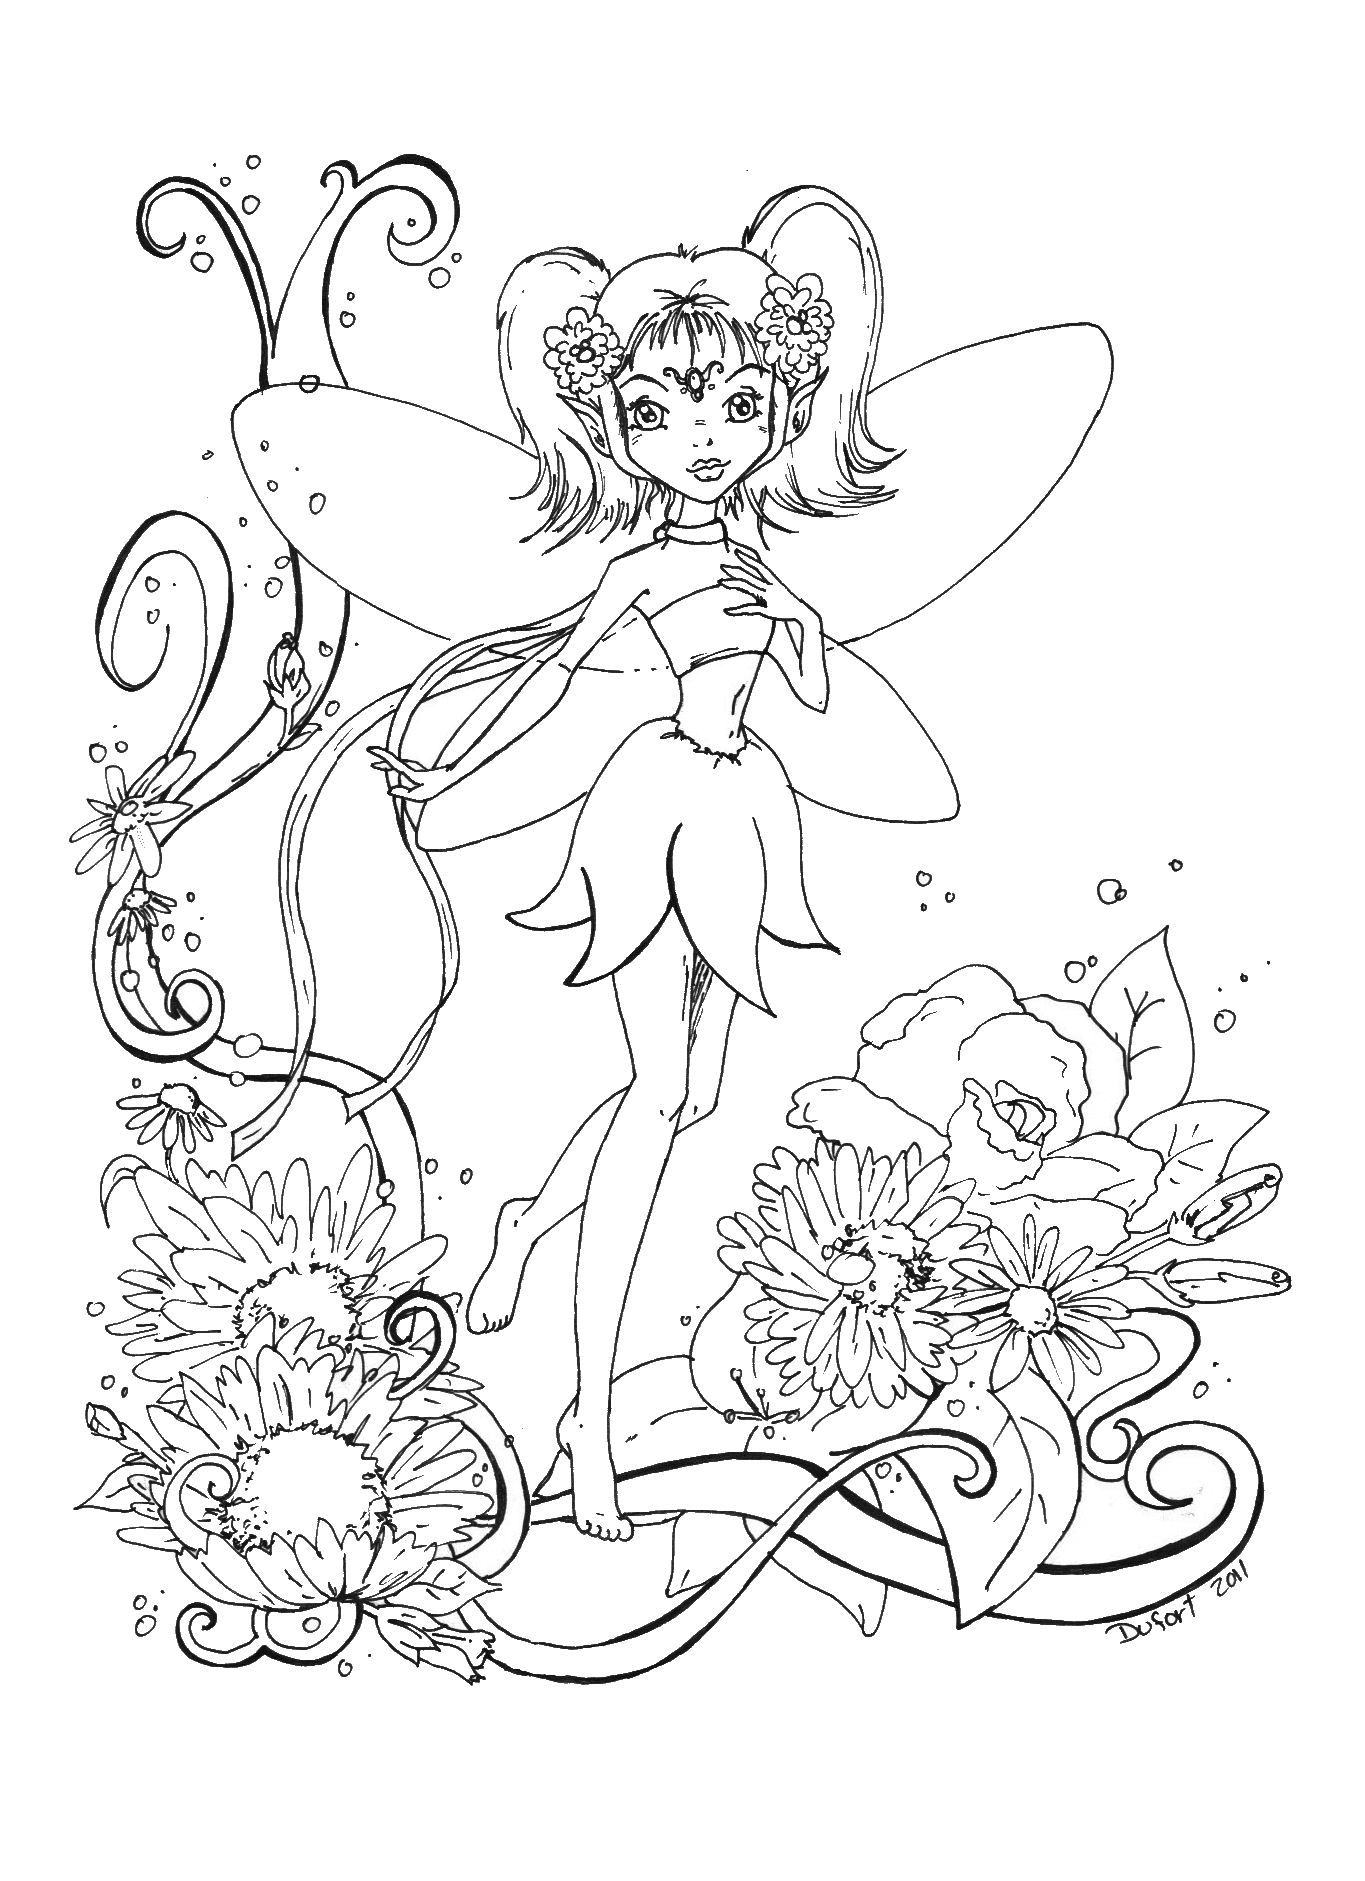 Coloring Pages : Best Evil Fairy Coloring For Adults Images ...